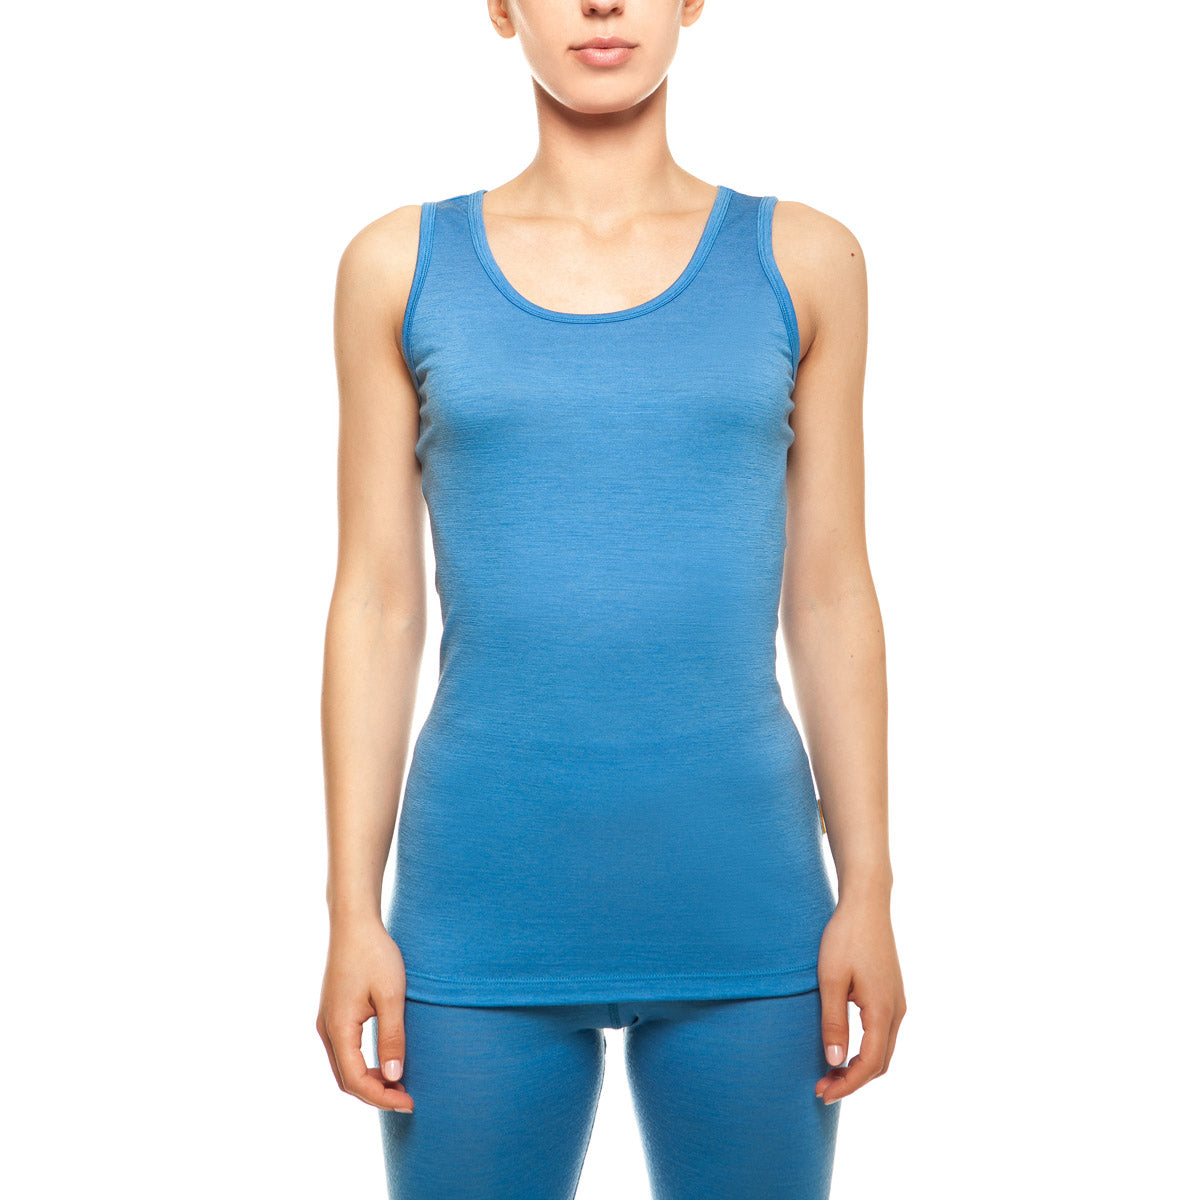 menique Women's Merino 160 Tank Top Light Blue Color